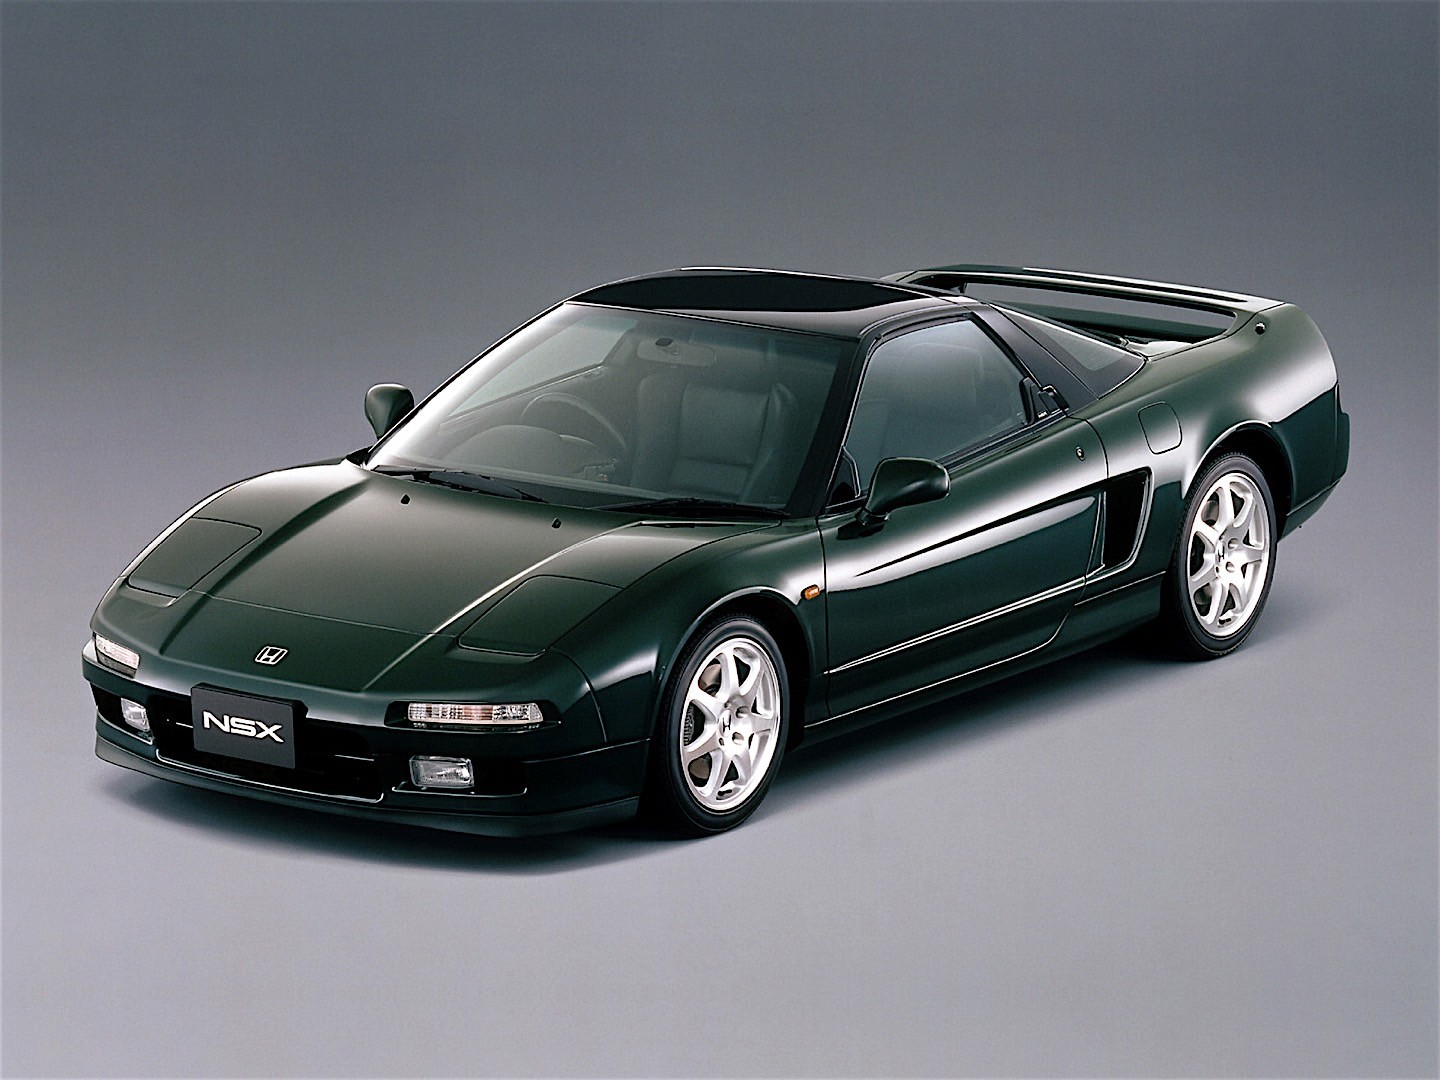 Acura Exotic Car >> HONDA NSX - 1991, 1992, 1993, 1994, 1995, 1996, 1997 - autoevolution